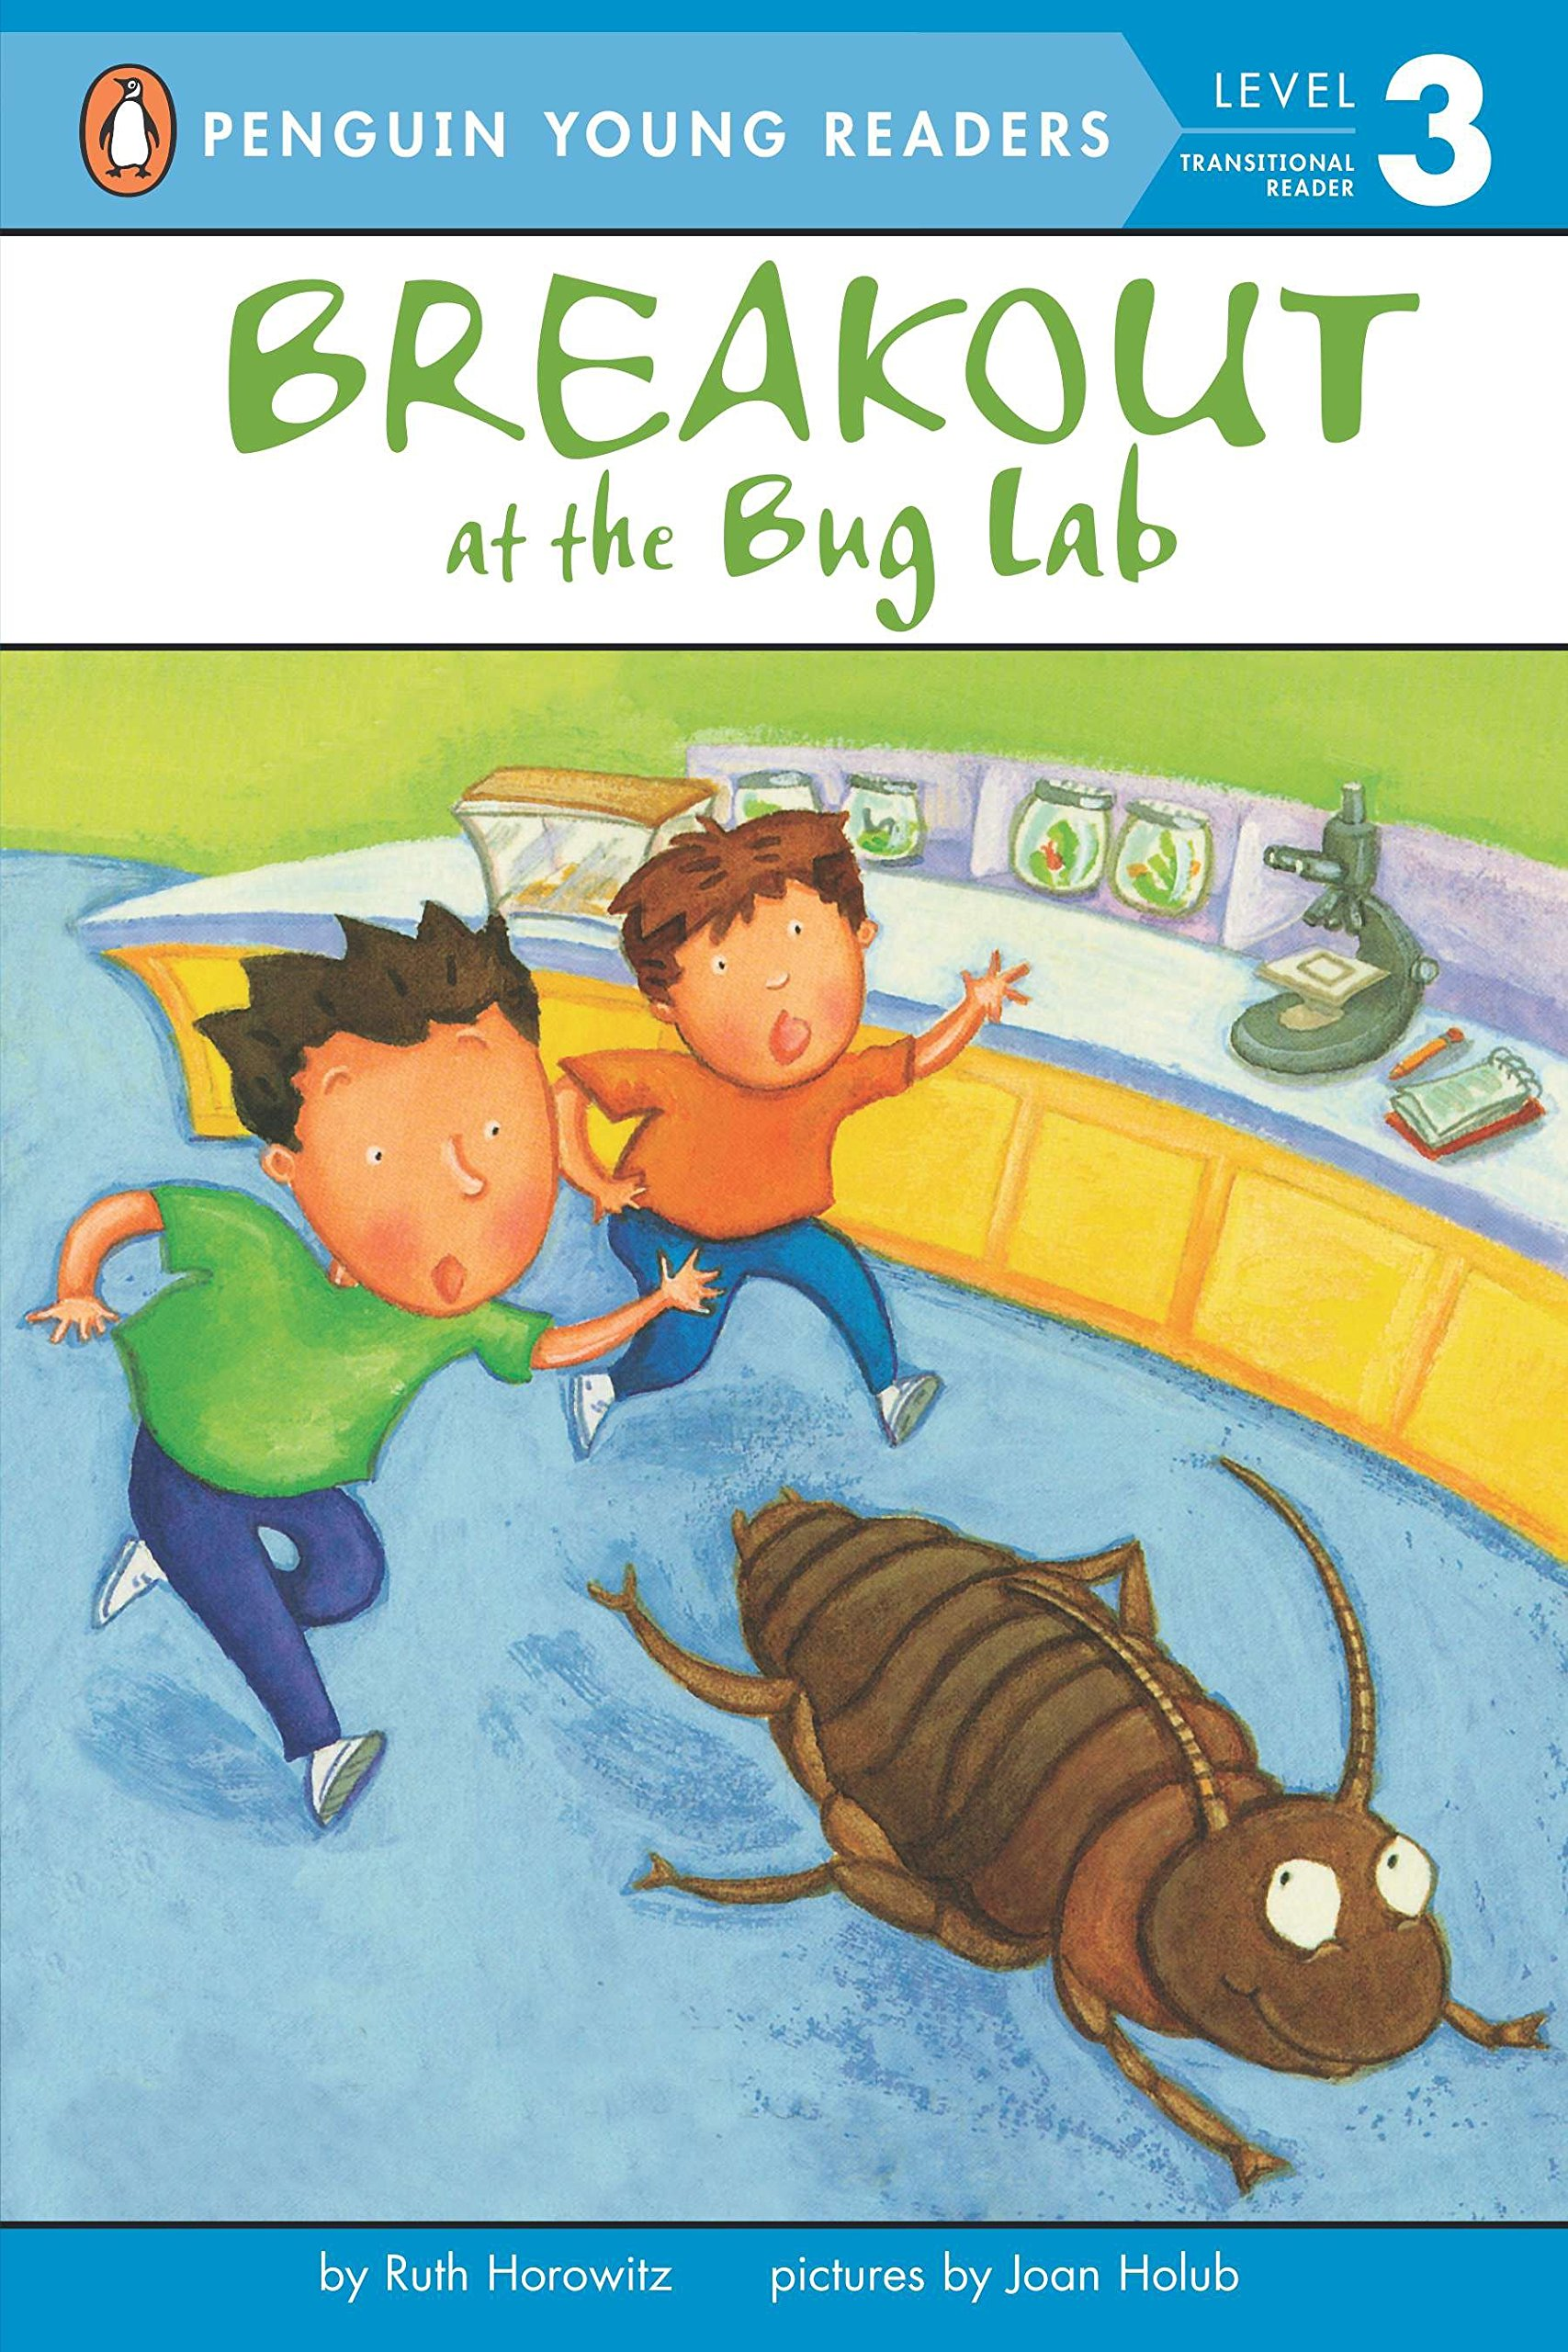 Amazon.com: Breakout at the Bug Lab (Penguin Young Readers, Level 3)  (9780142302002): Ruth Horowitz, Joan Holub: Books